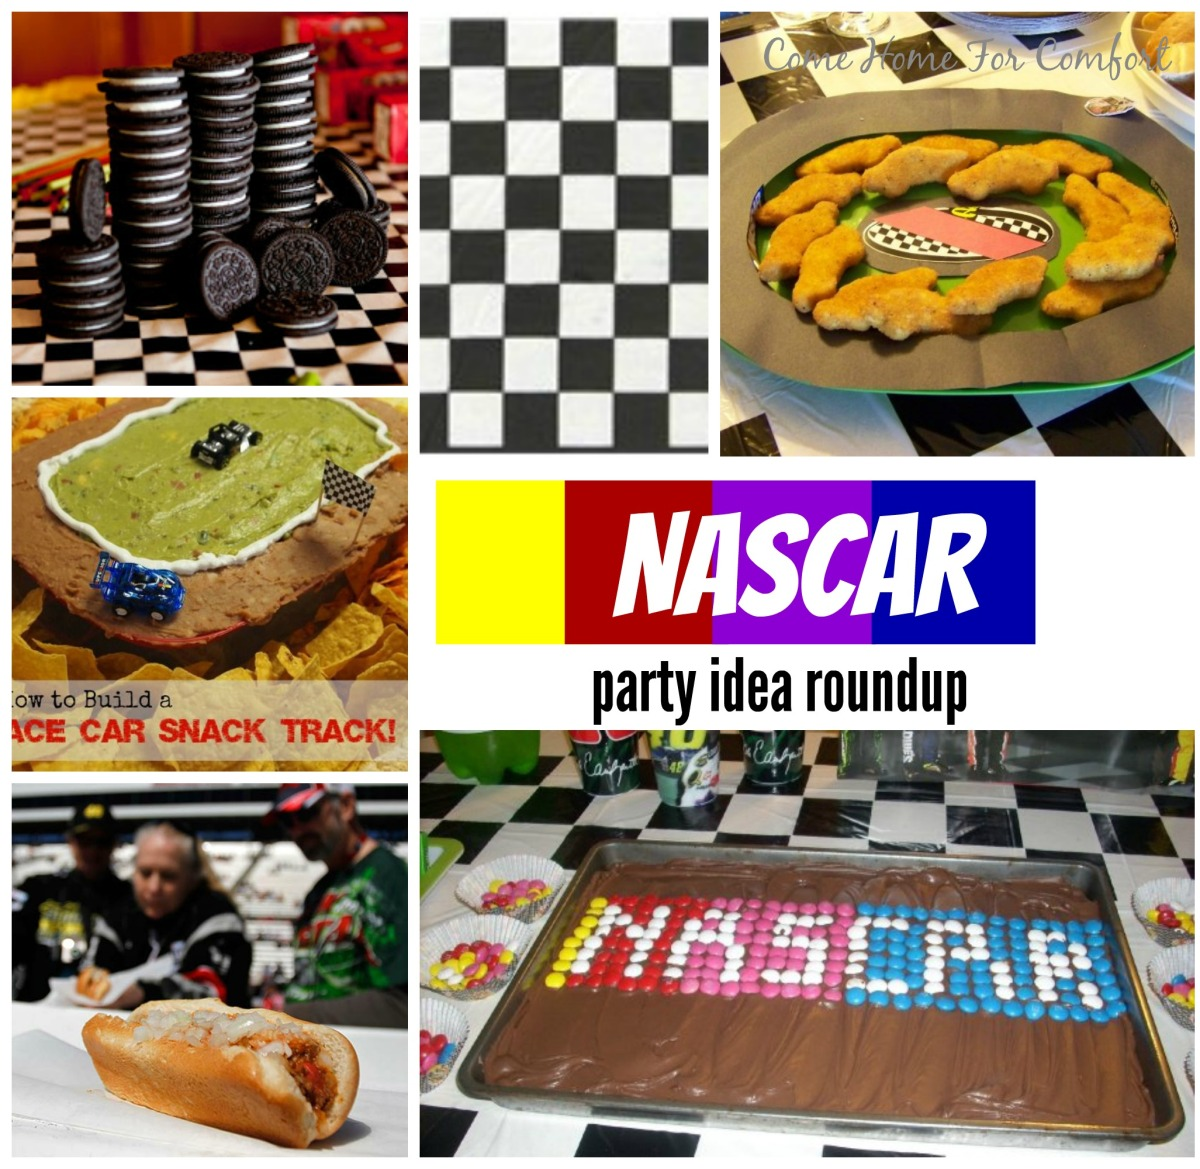 Nascar Party Ideas Come Home For Comfort